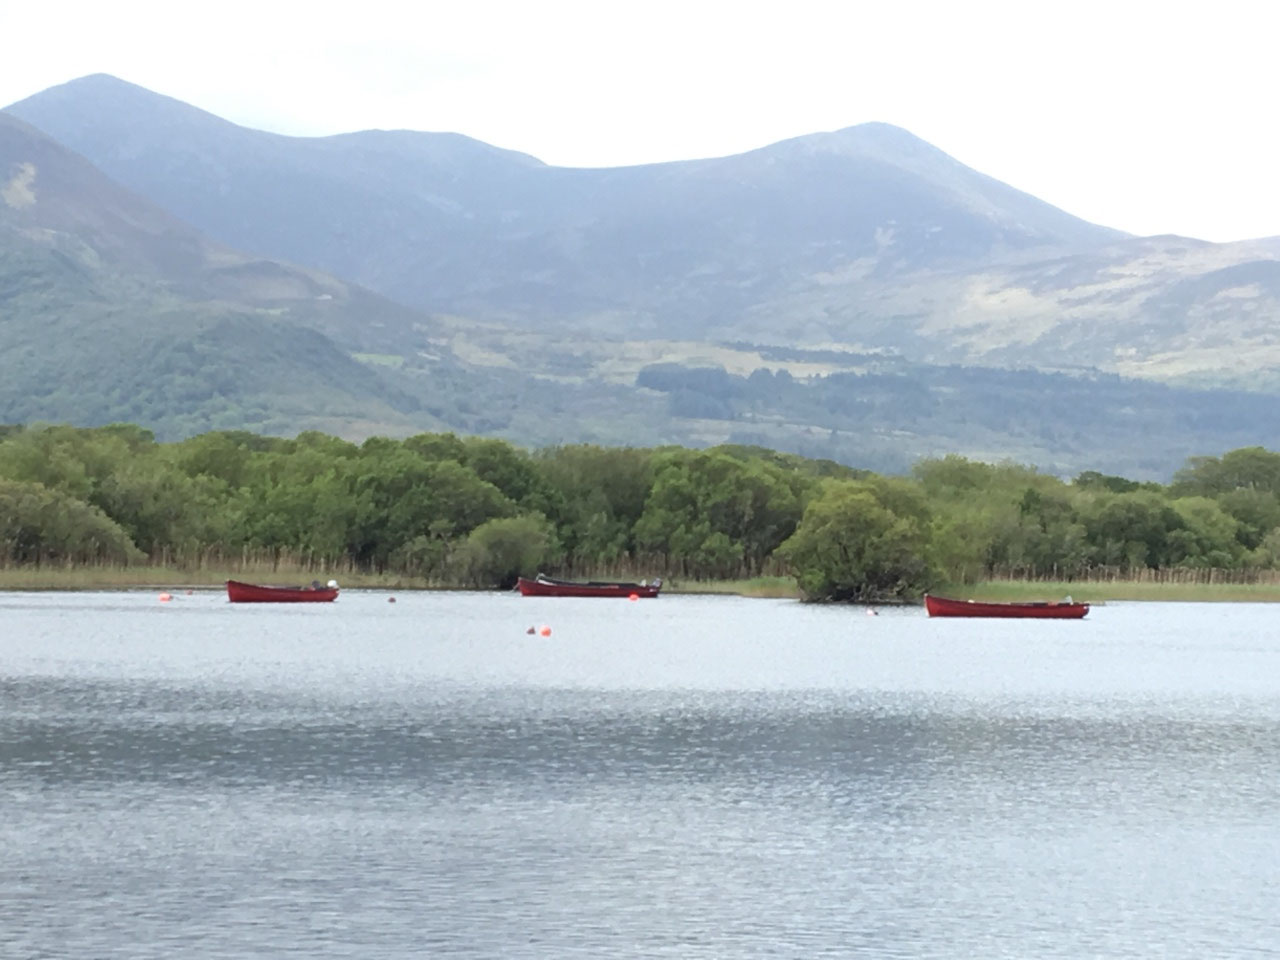 The lake at Ross Castle